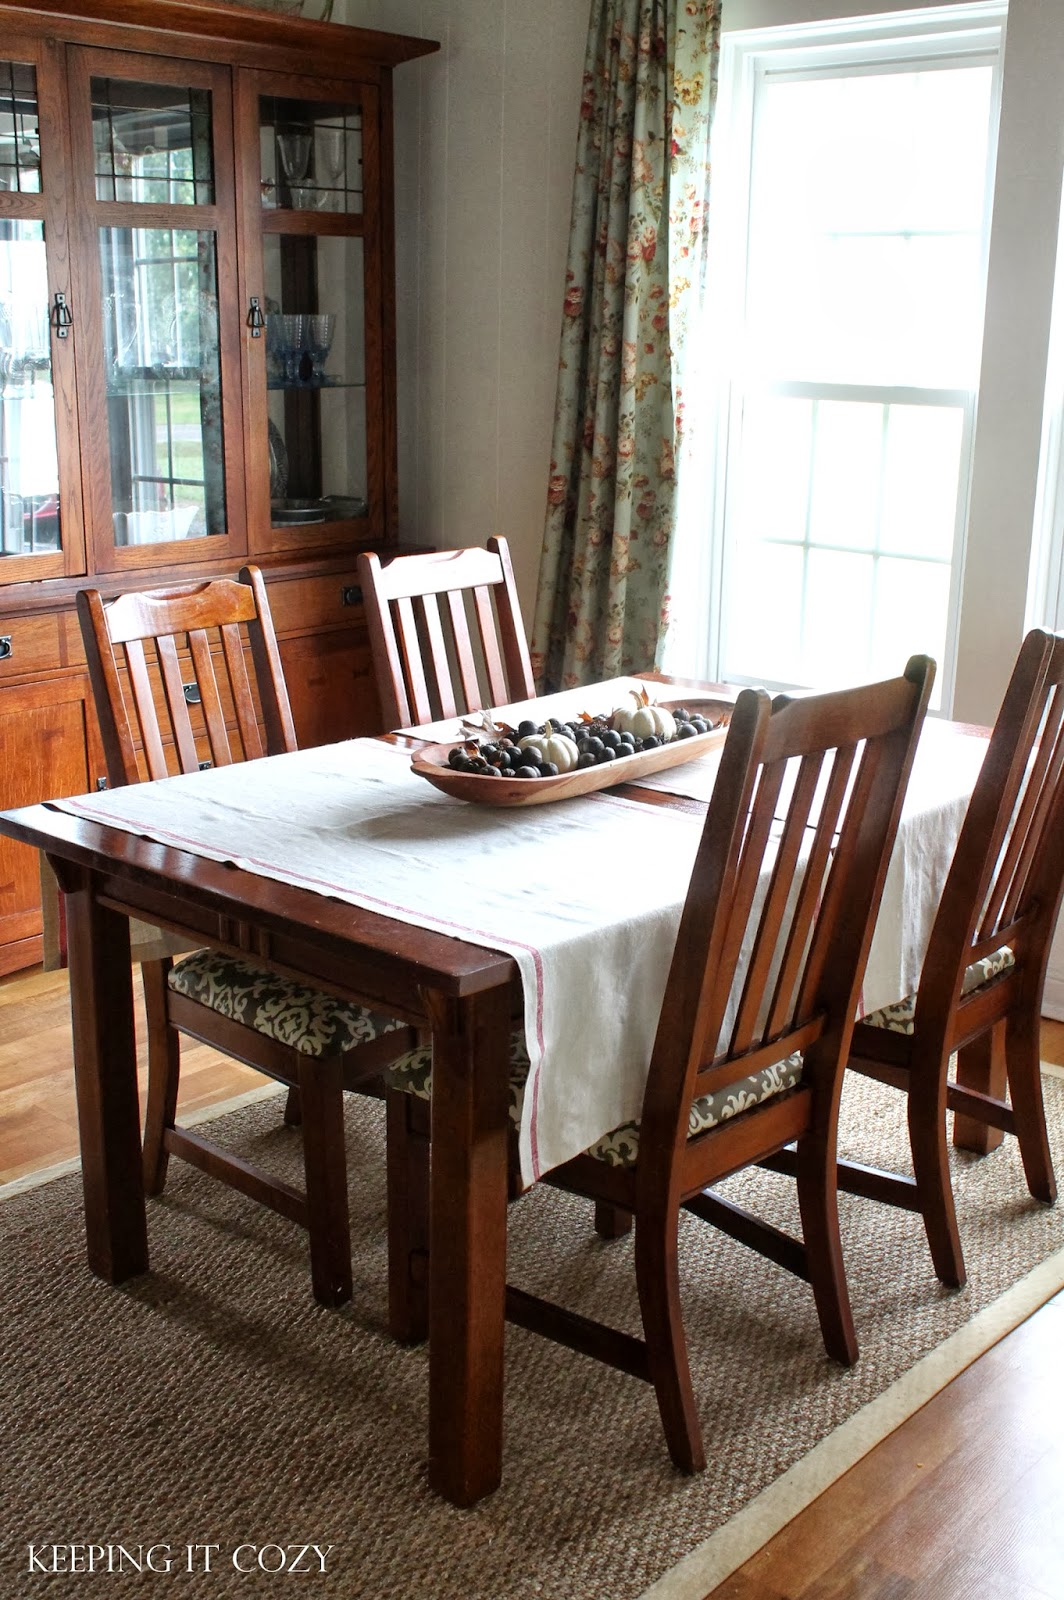 Cozy Dining Space: Keeping It Cozy: An Autumn Look In The Dining Room